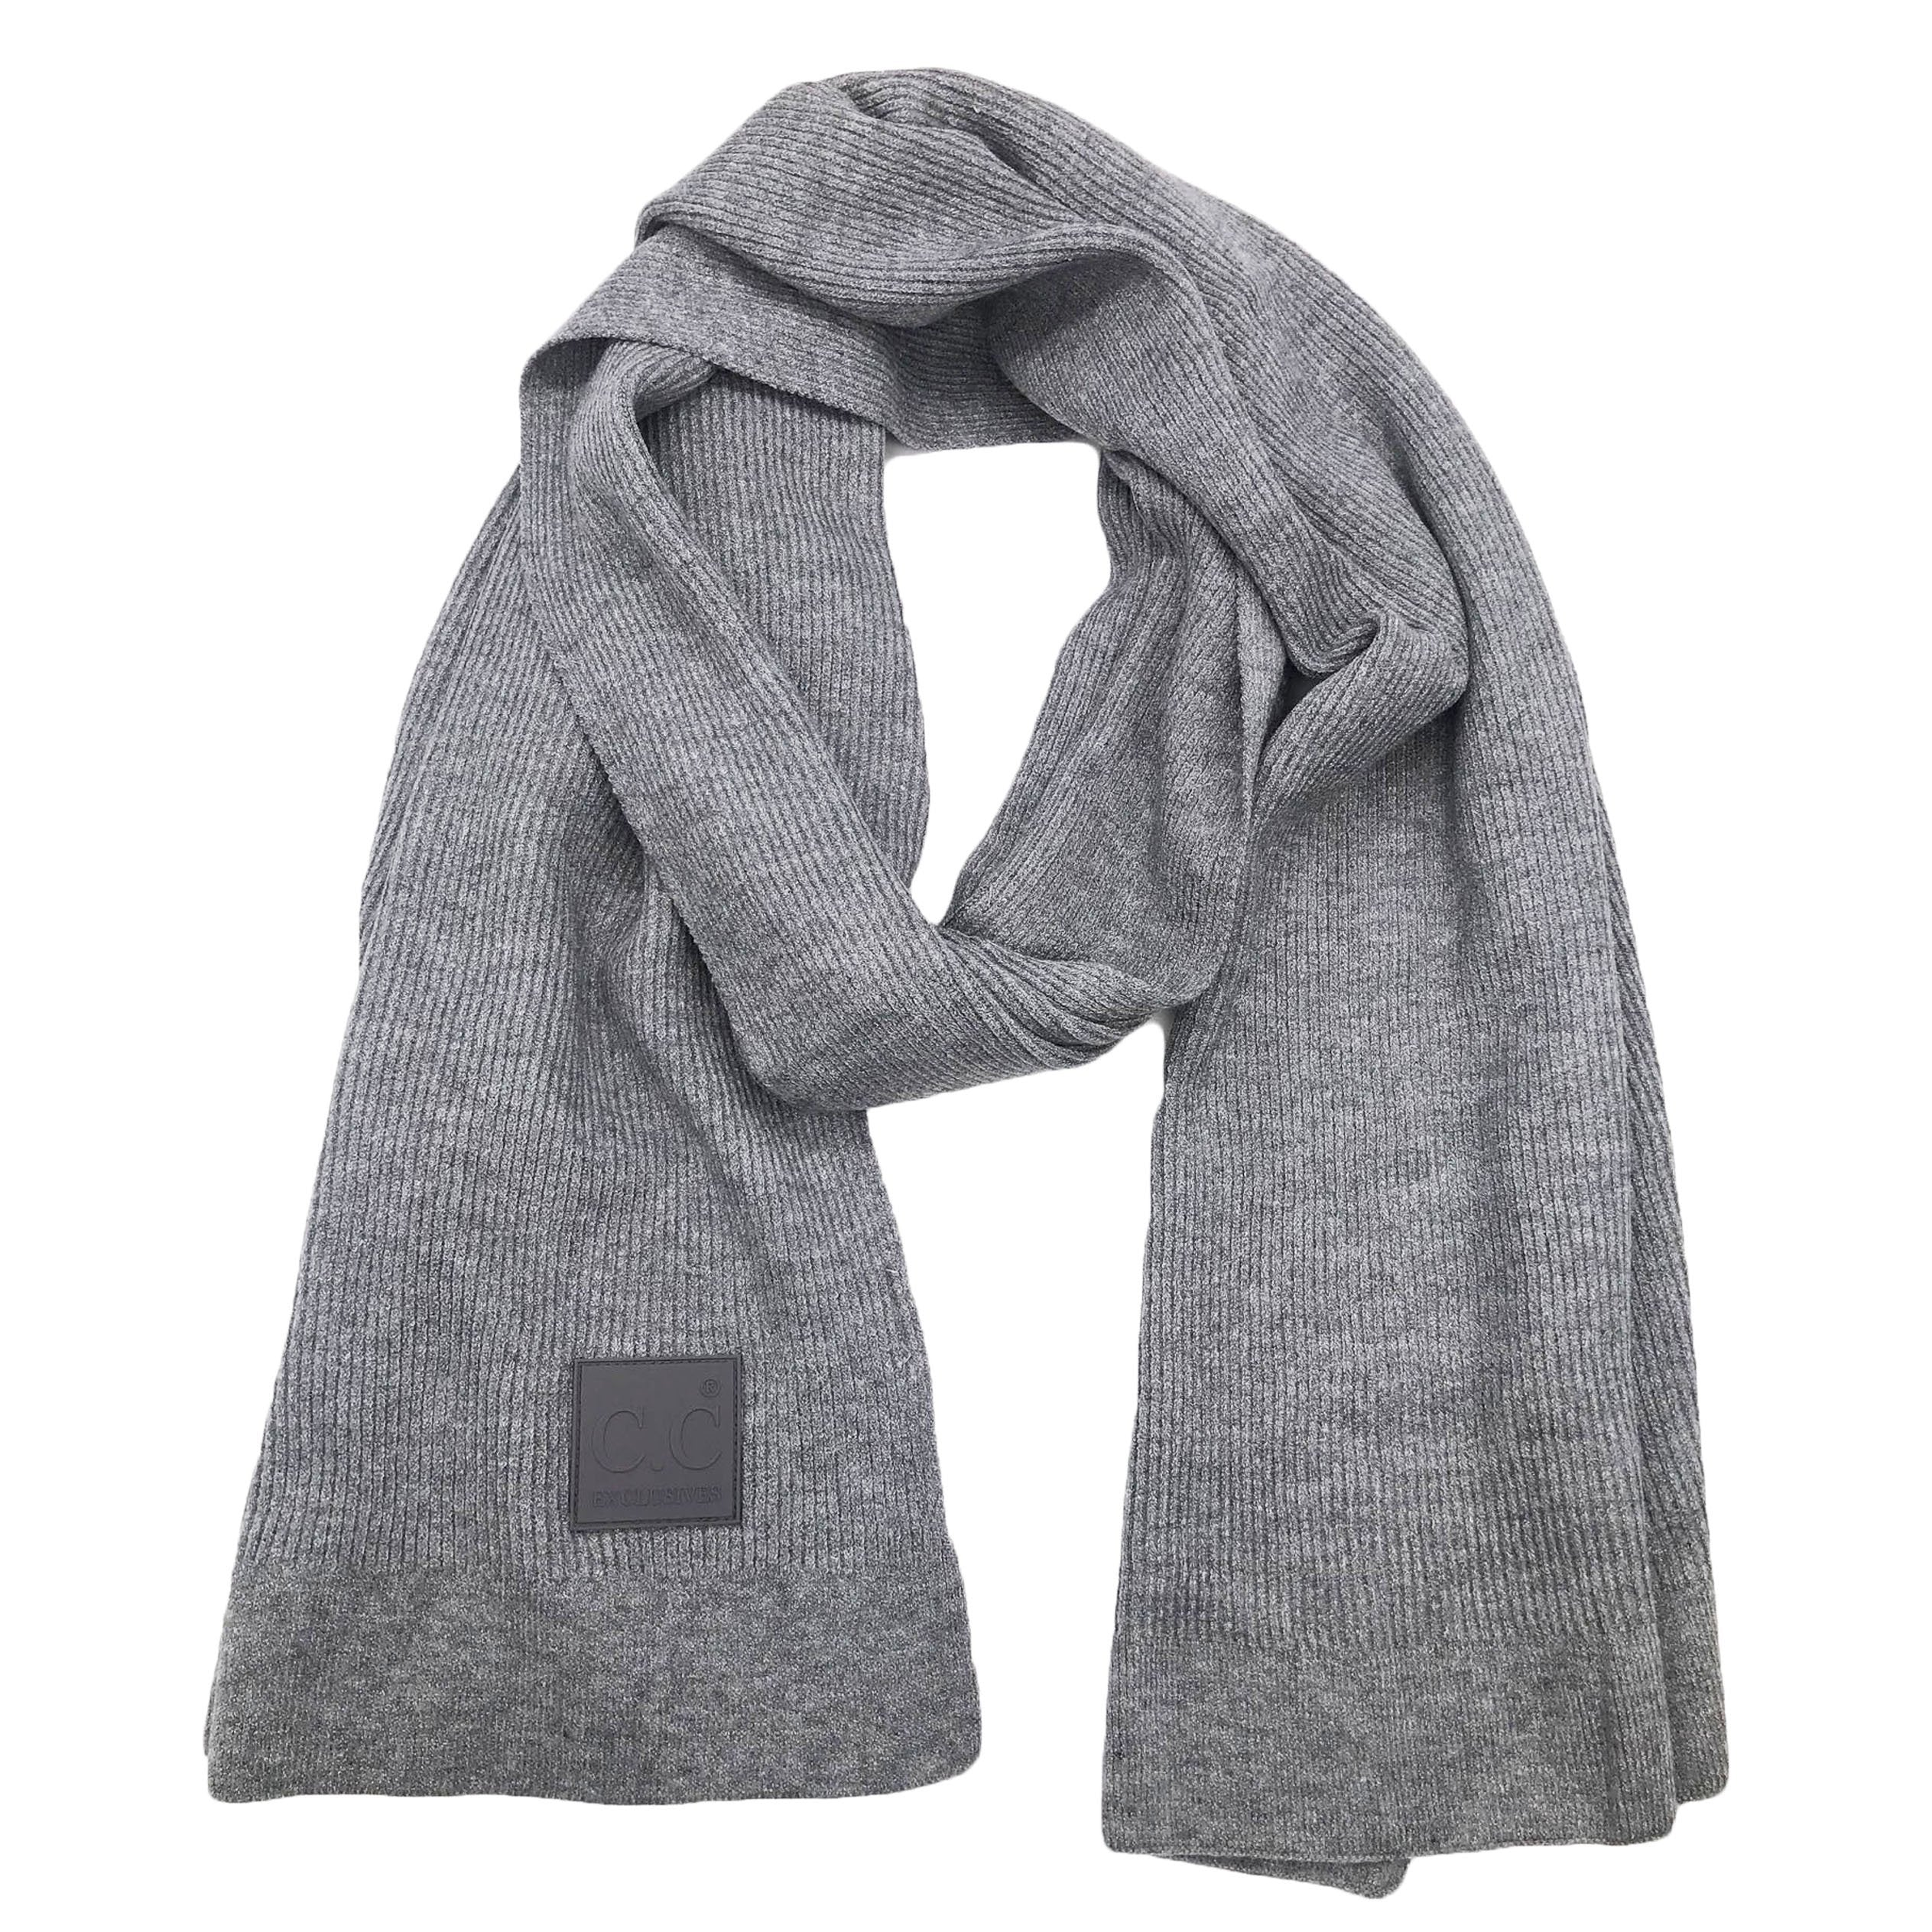 Scarf-7007 Rubber Patch Scarf Light Melange Grey